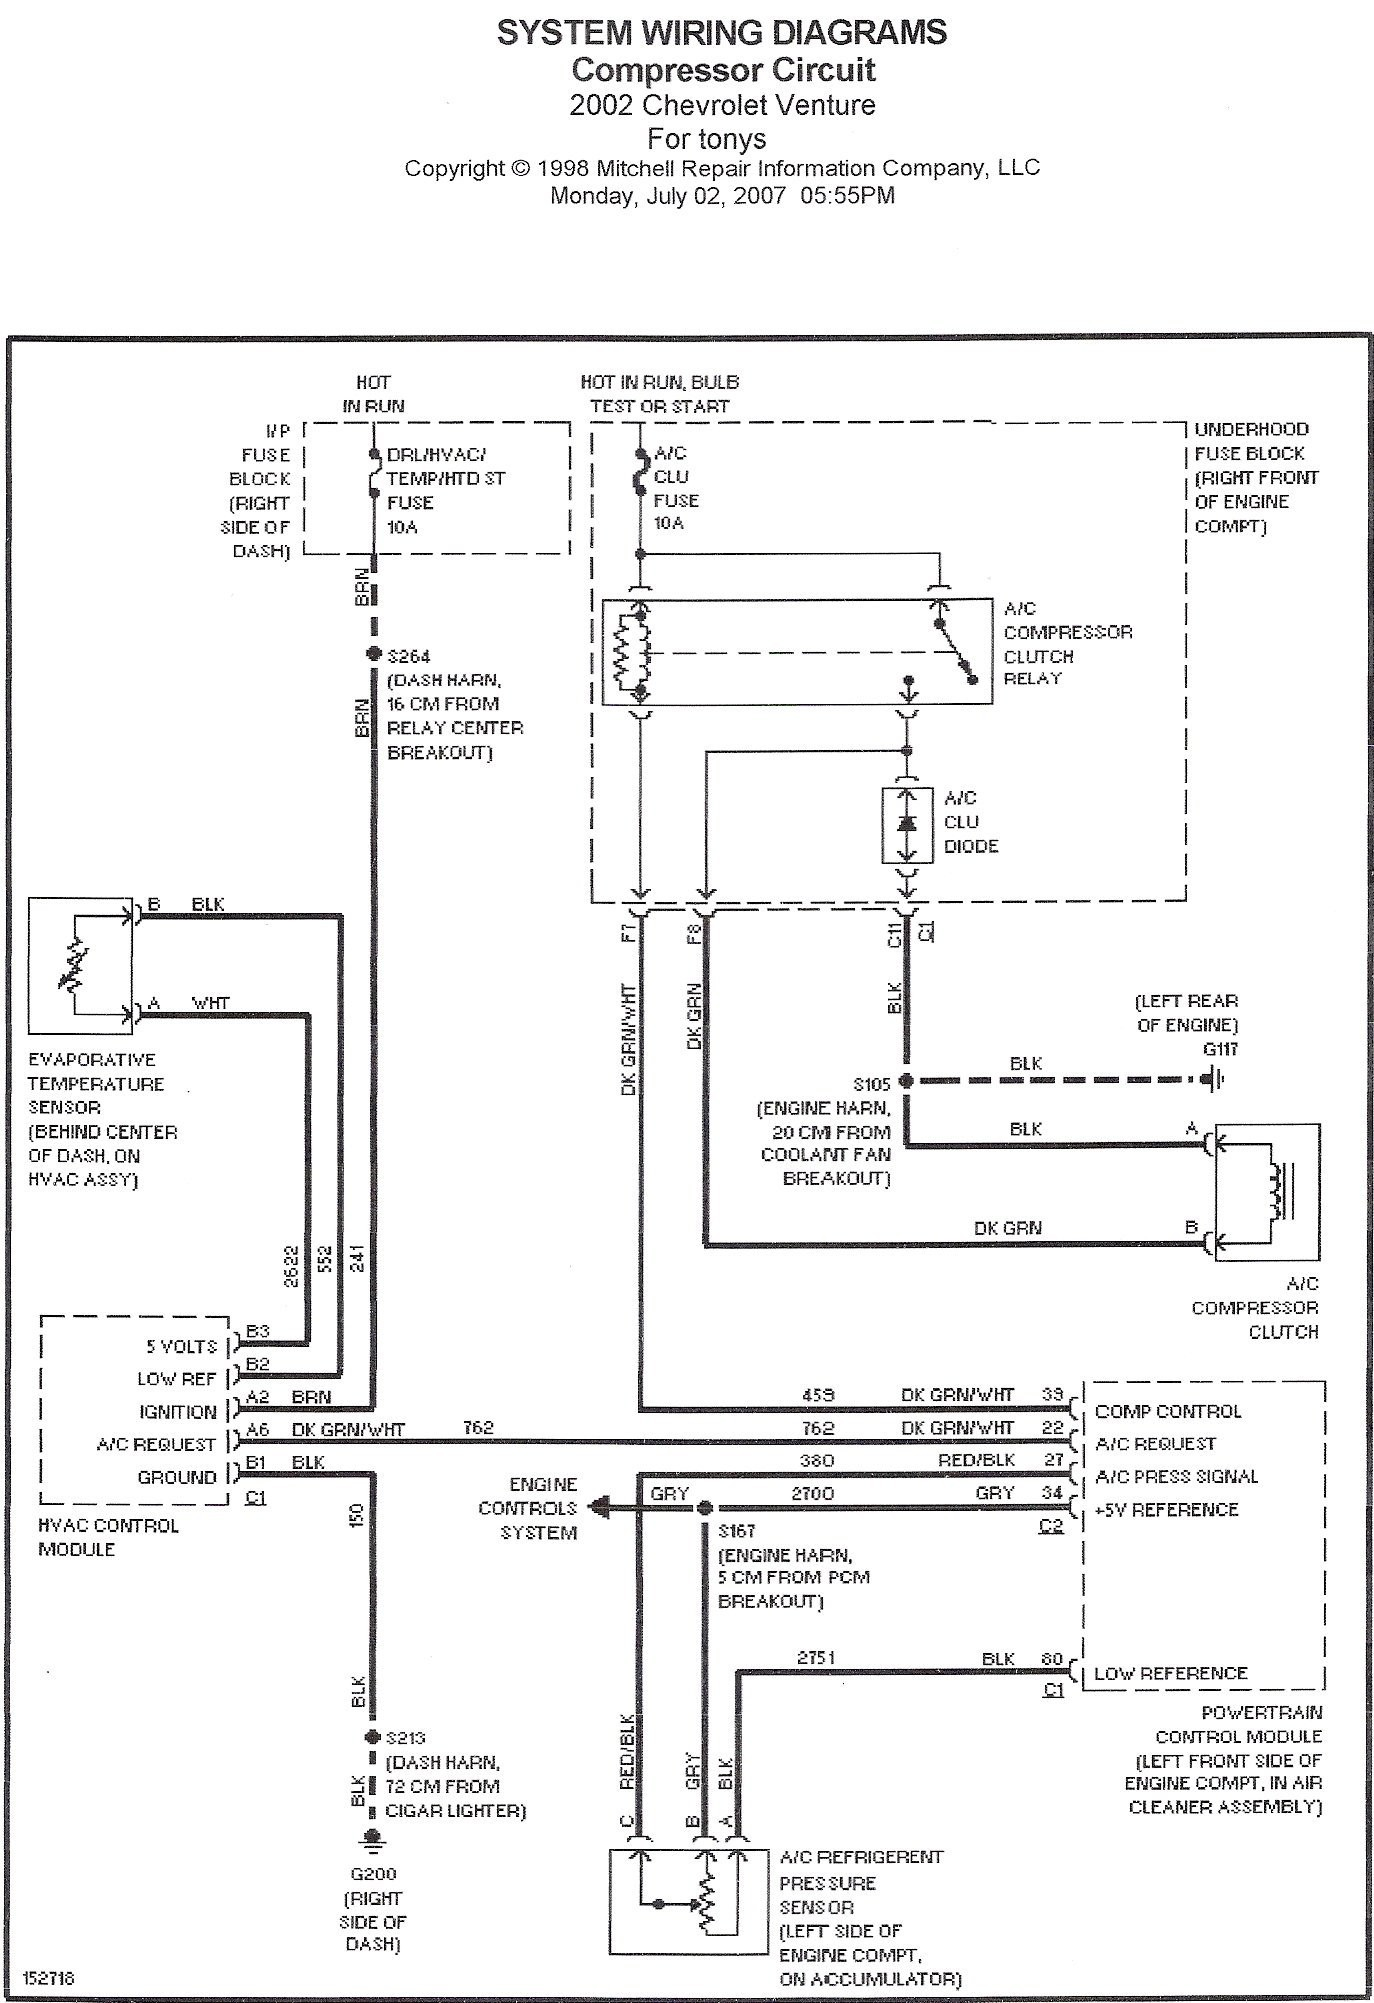 02 Tracker Wiring Diagrams No A C 2002 Chevy Venture Pressor Clutch Not Engaging Fuse Good Don T Know if Relay is Of 02 Tracker Wiring Diagrams